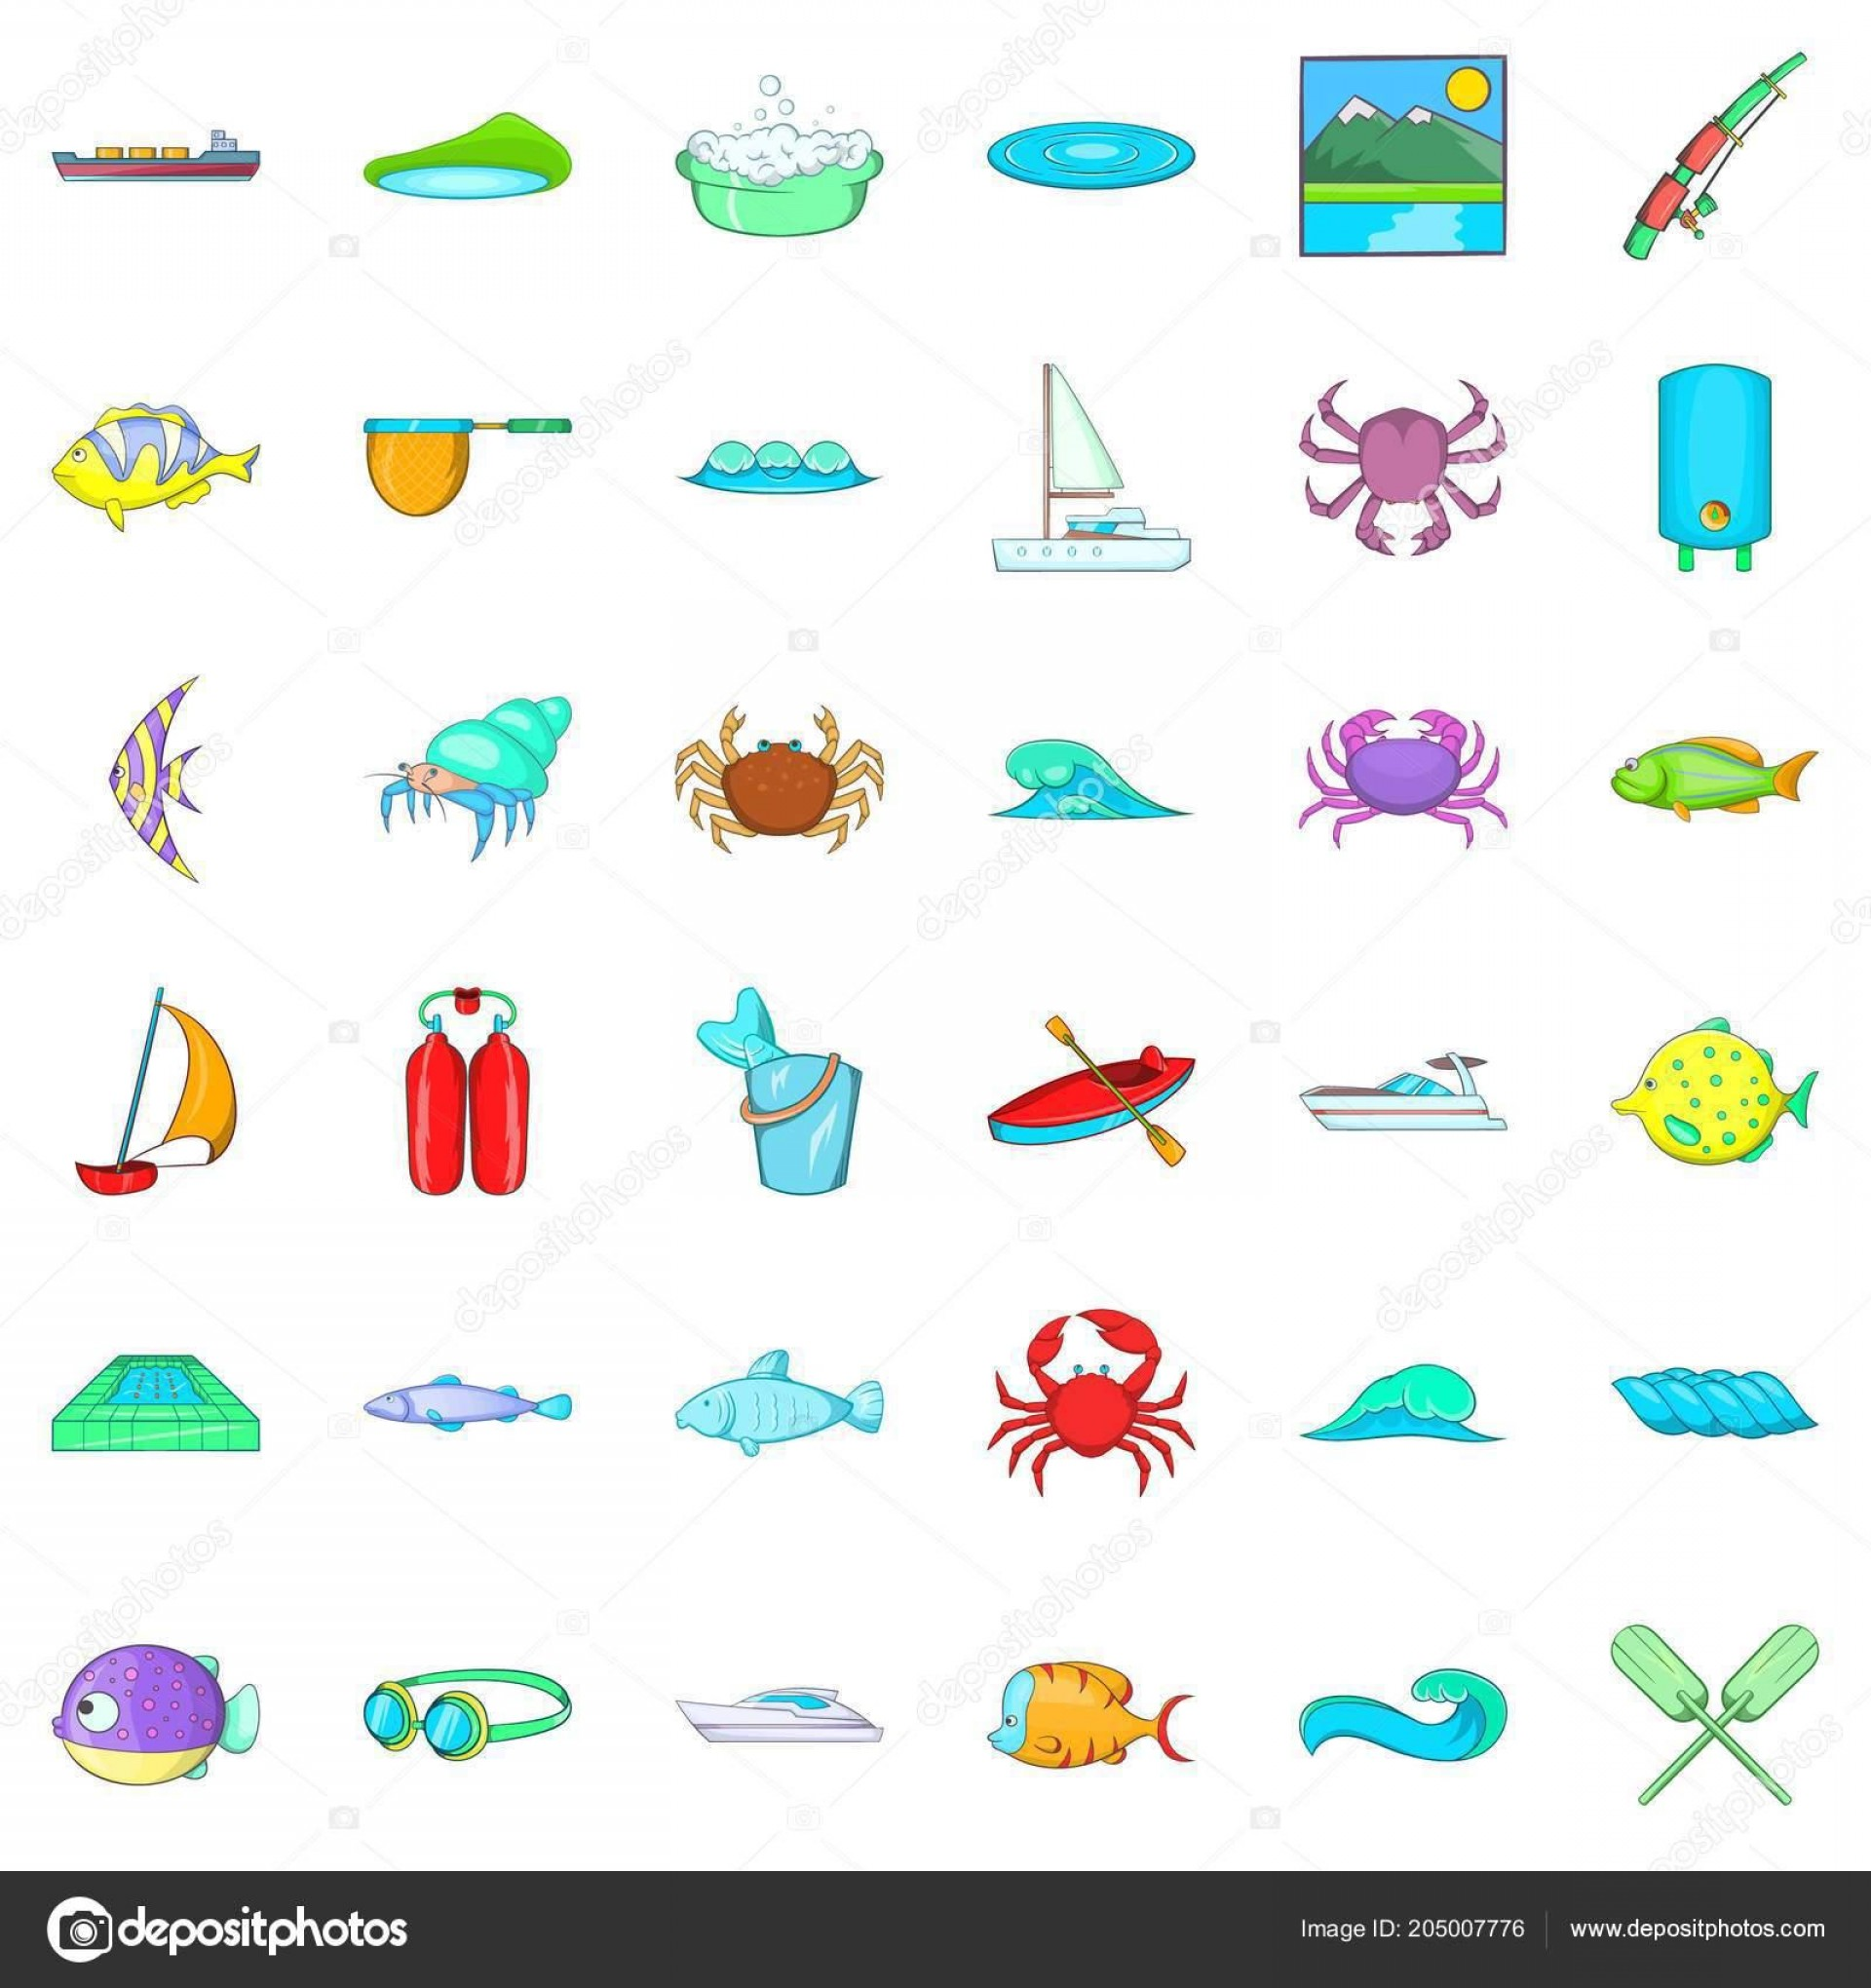 Ocean Water Clip Art Vector: Best Cartoon Ocean Water Vector Design